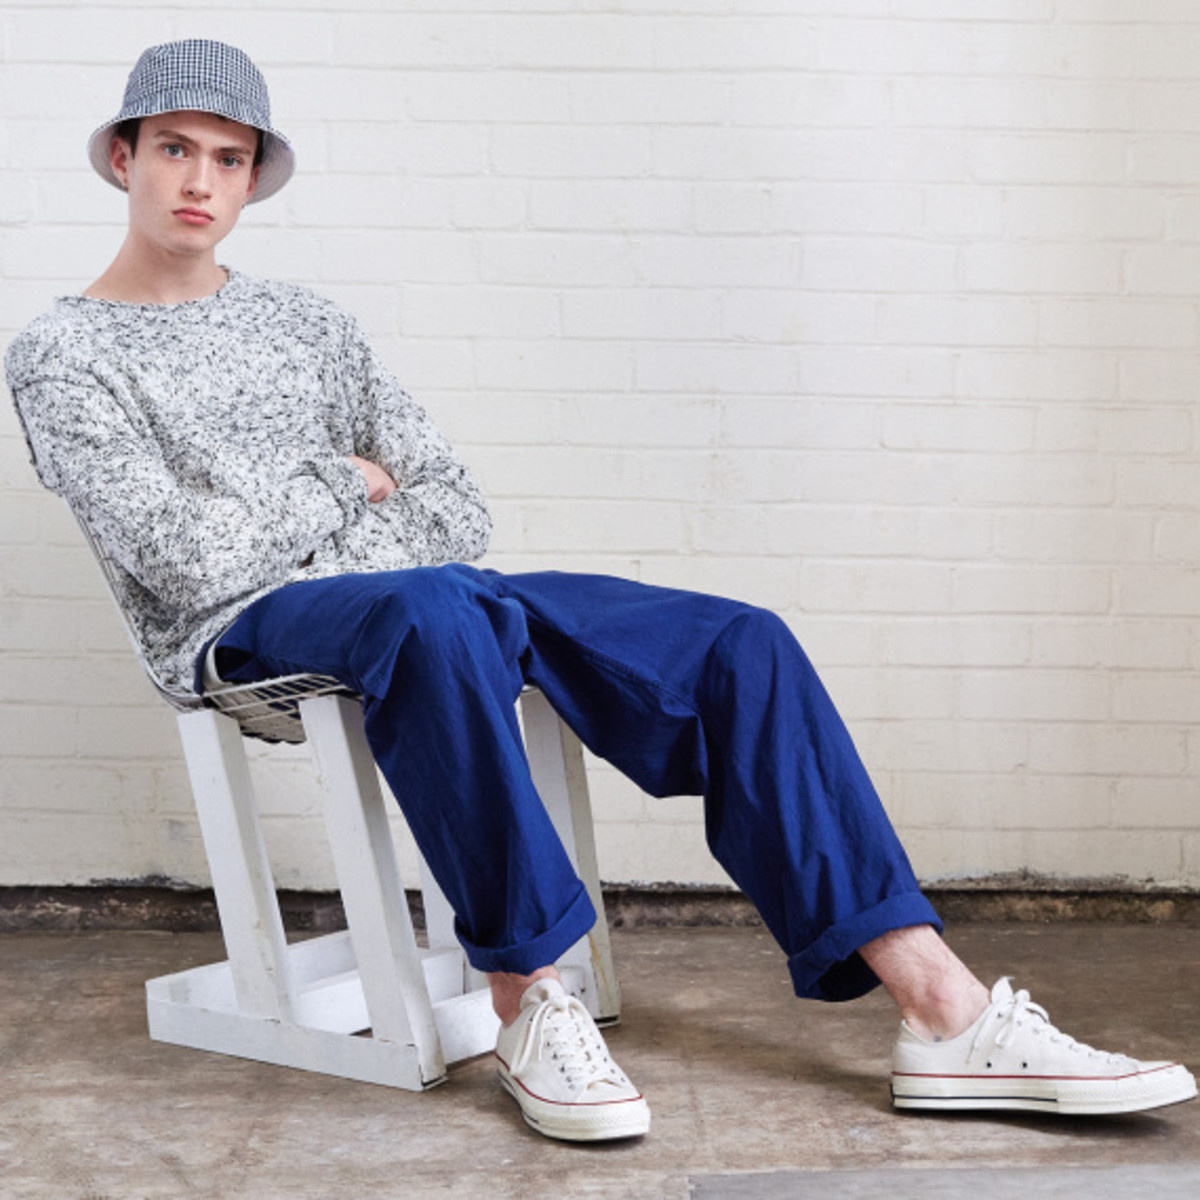 Urban Outfitters - Men's Spring 2015 Collection | Preview - 0